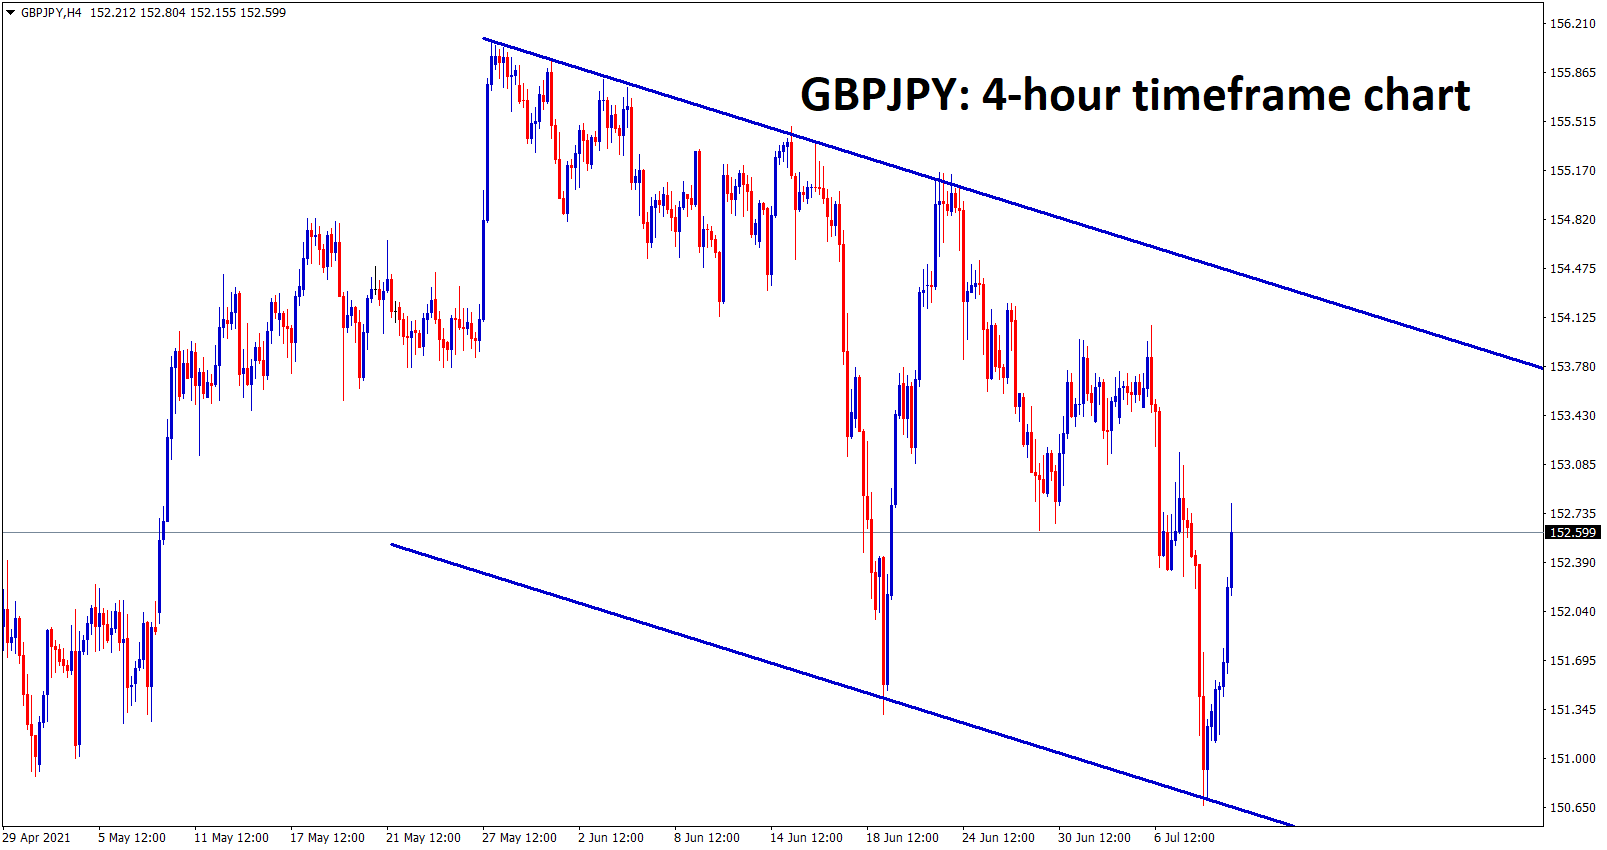 GBPJPY is moving in a downtrend channel ranges